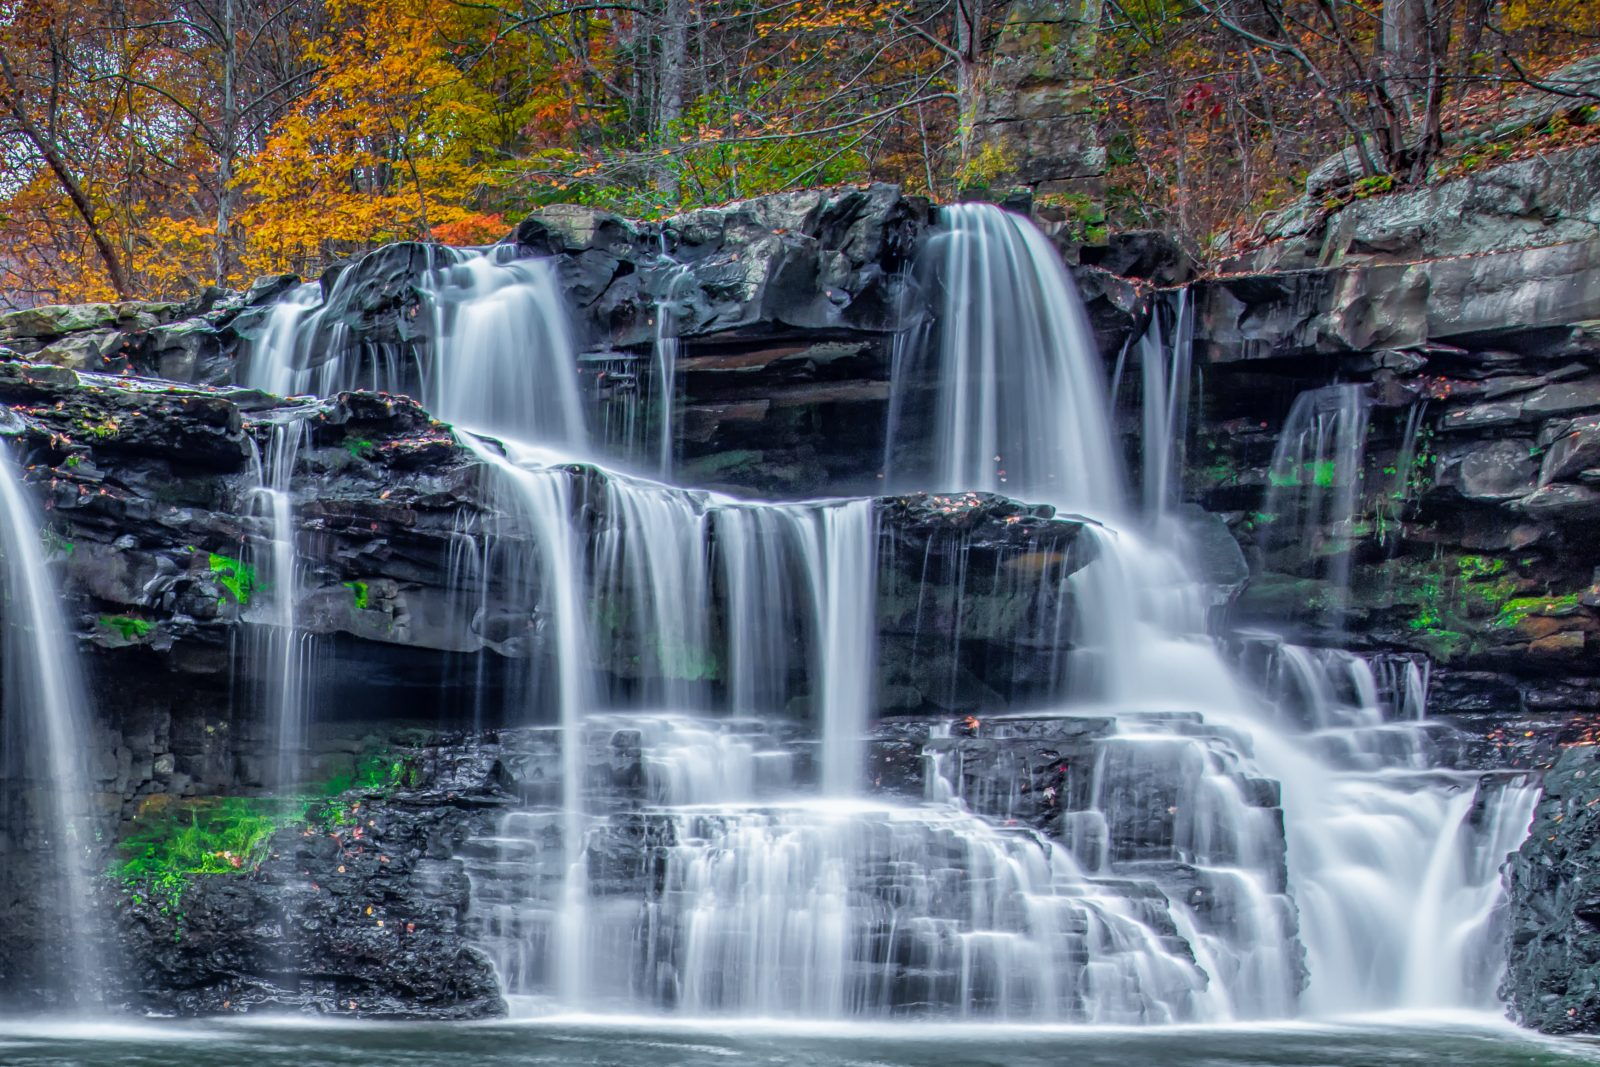 Waterfall in New River Gorge